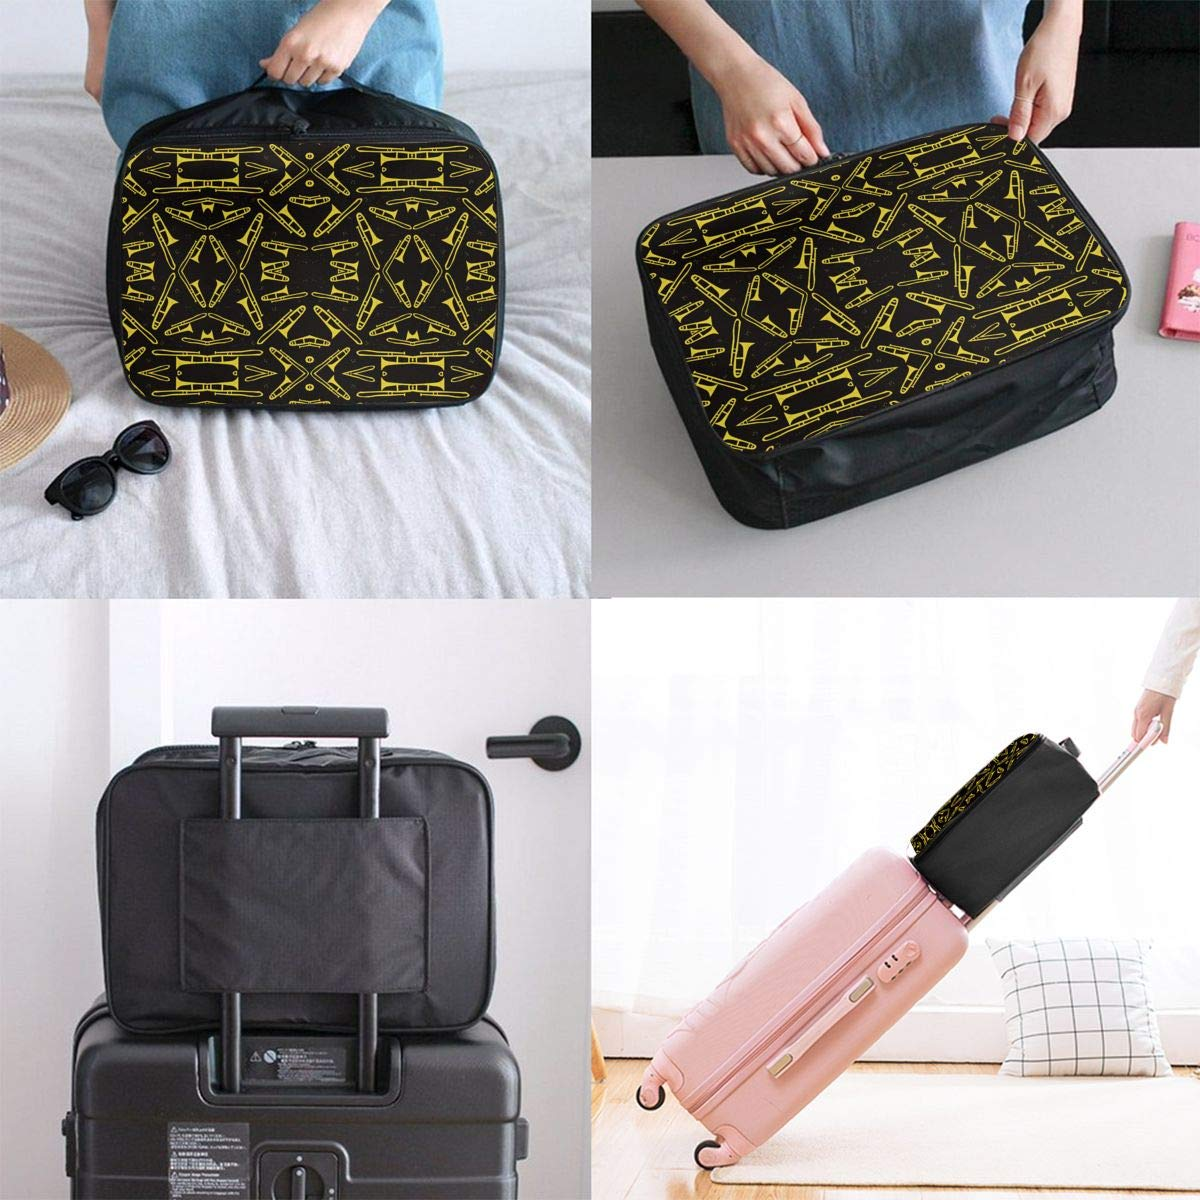 YueLJB Trombones Musical Instruments Lightweight Large Capacity Portable Luggage Bag Travel Duffel Bag Storage Carry Luggage Duffle Tote Bag